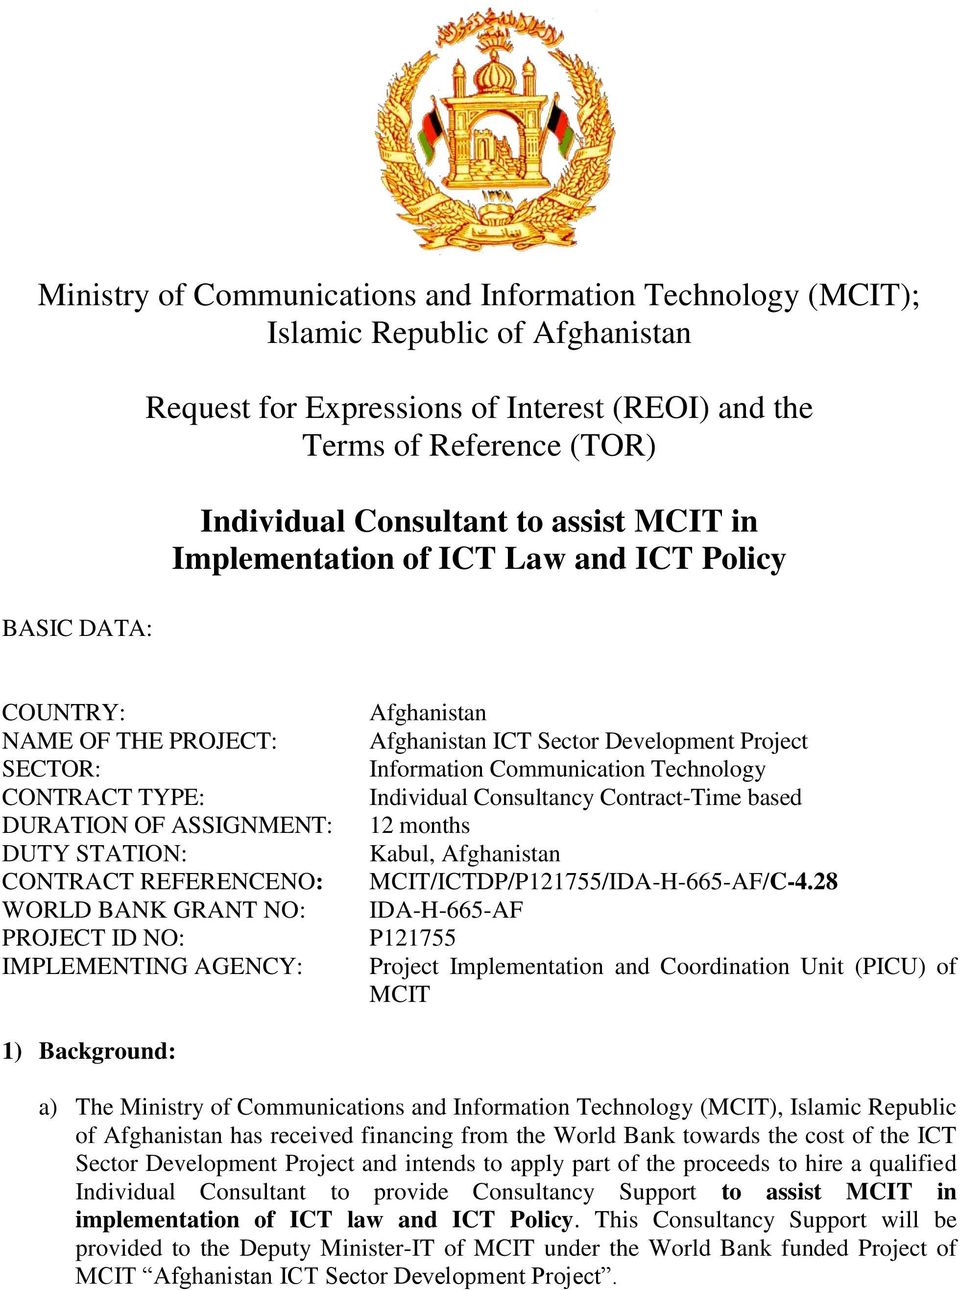 Ministry of Communications and Information Technology (MCIT